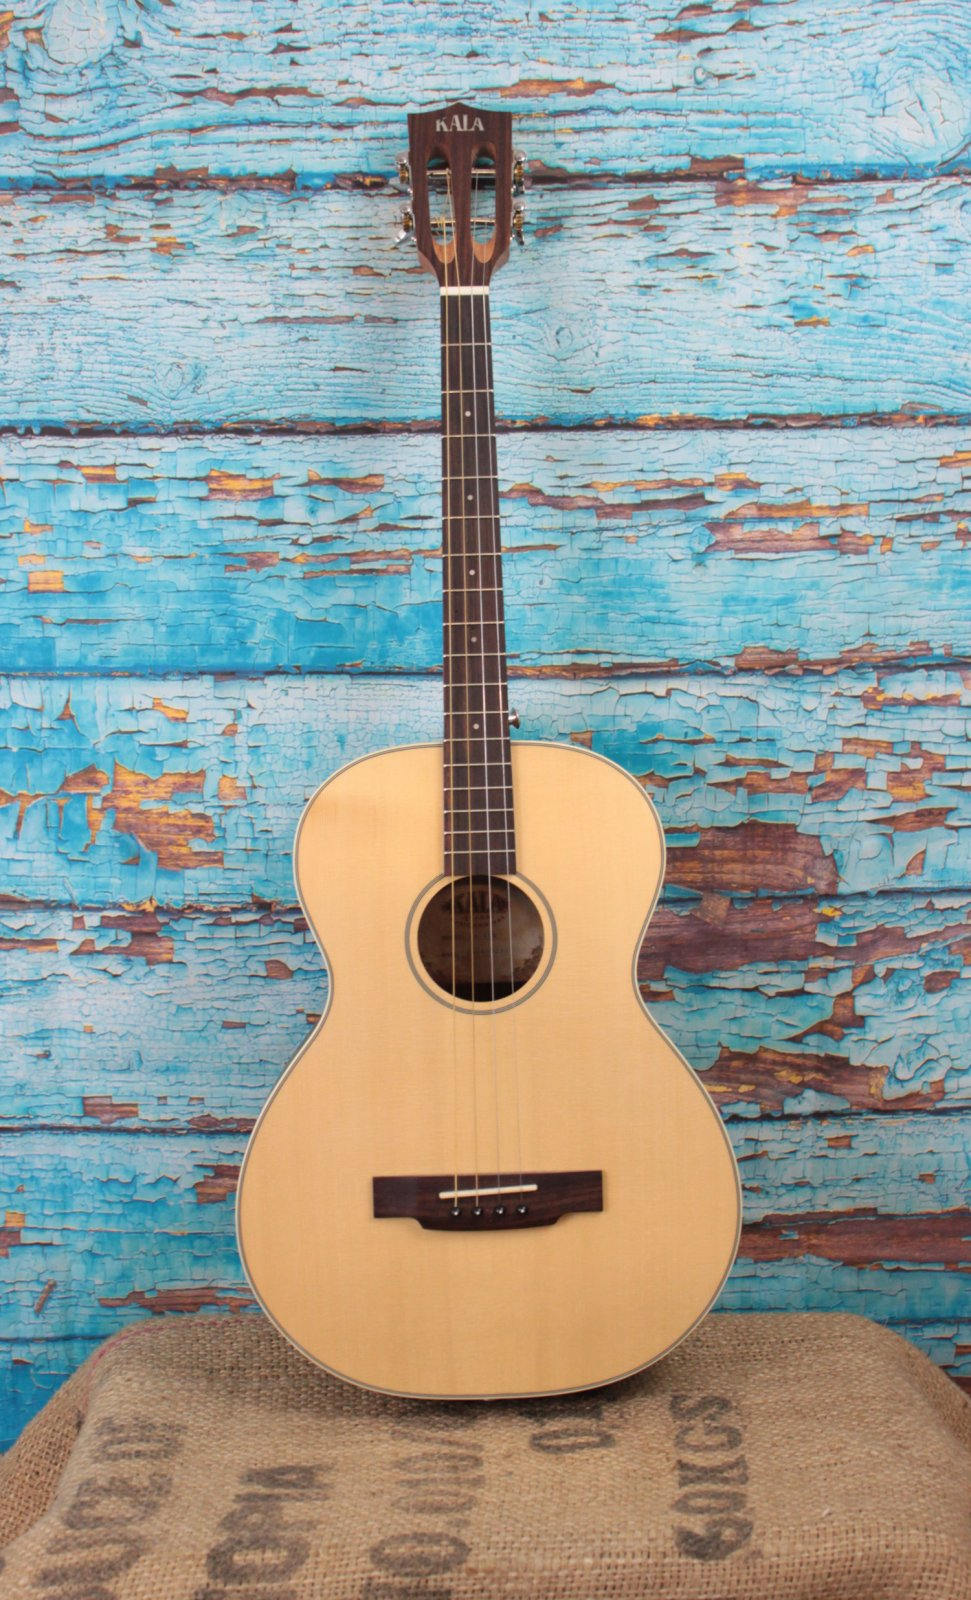 Kala KA-GTR Acoustic Tenor Guitar